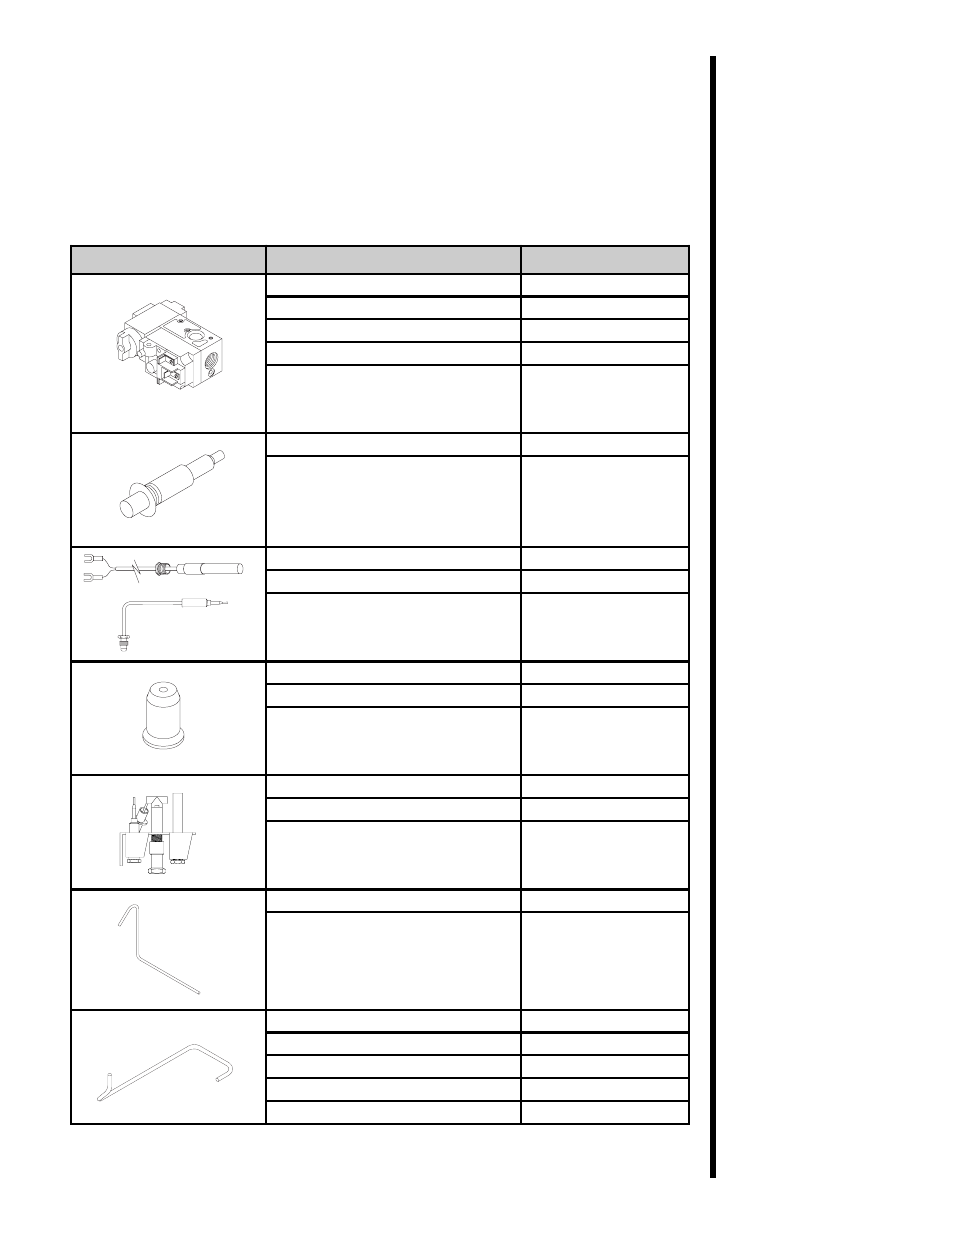 Section 5  Replacement Parts